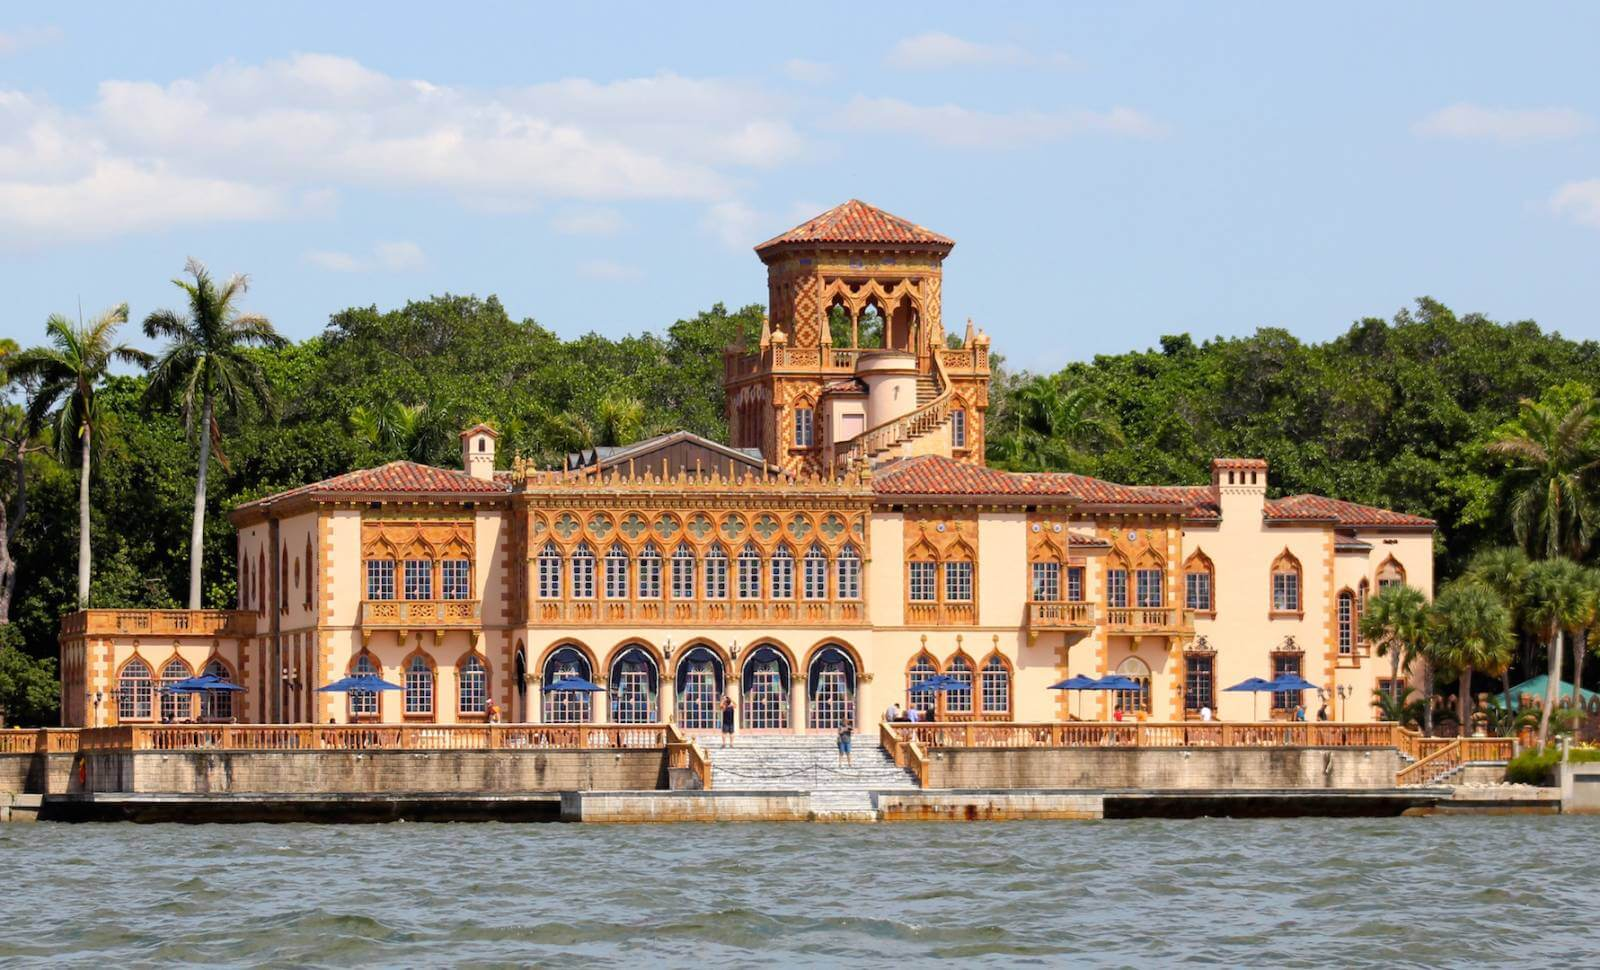 The Ringling Ca' d'Zan Mansion from Sarasota Bay. Sarasota, Florida is one of the top historic homes in Southwest Florida. Photo by Nita Ettinger. Must Do Visitor Guides | MustDo.com